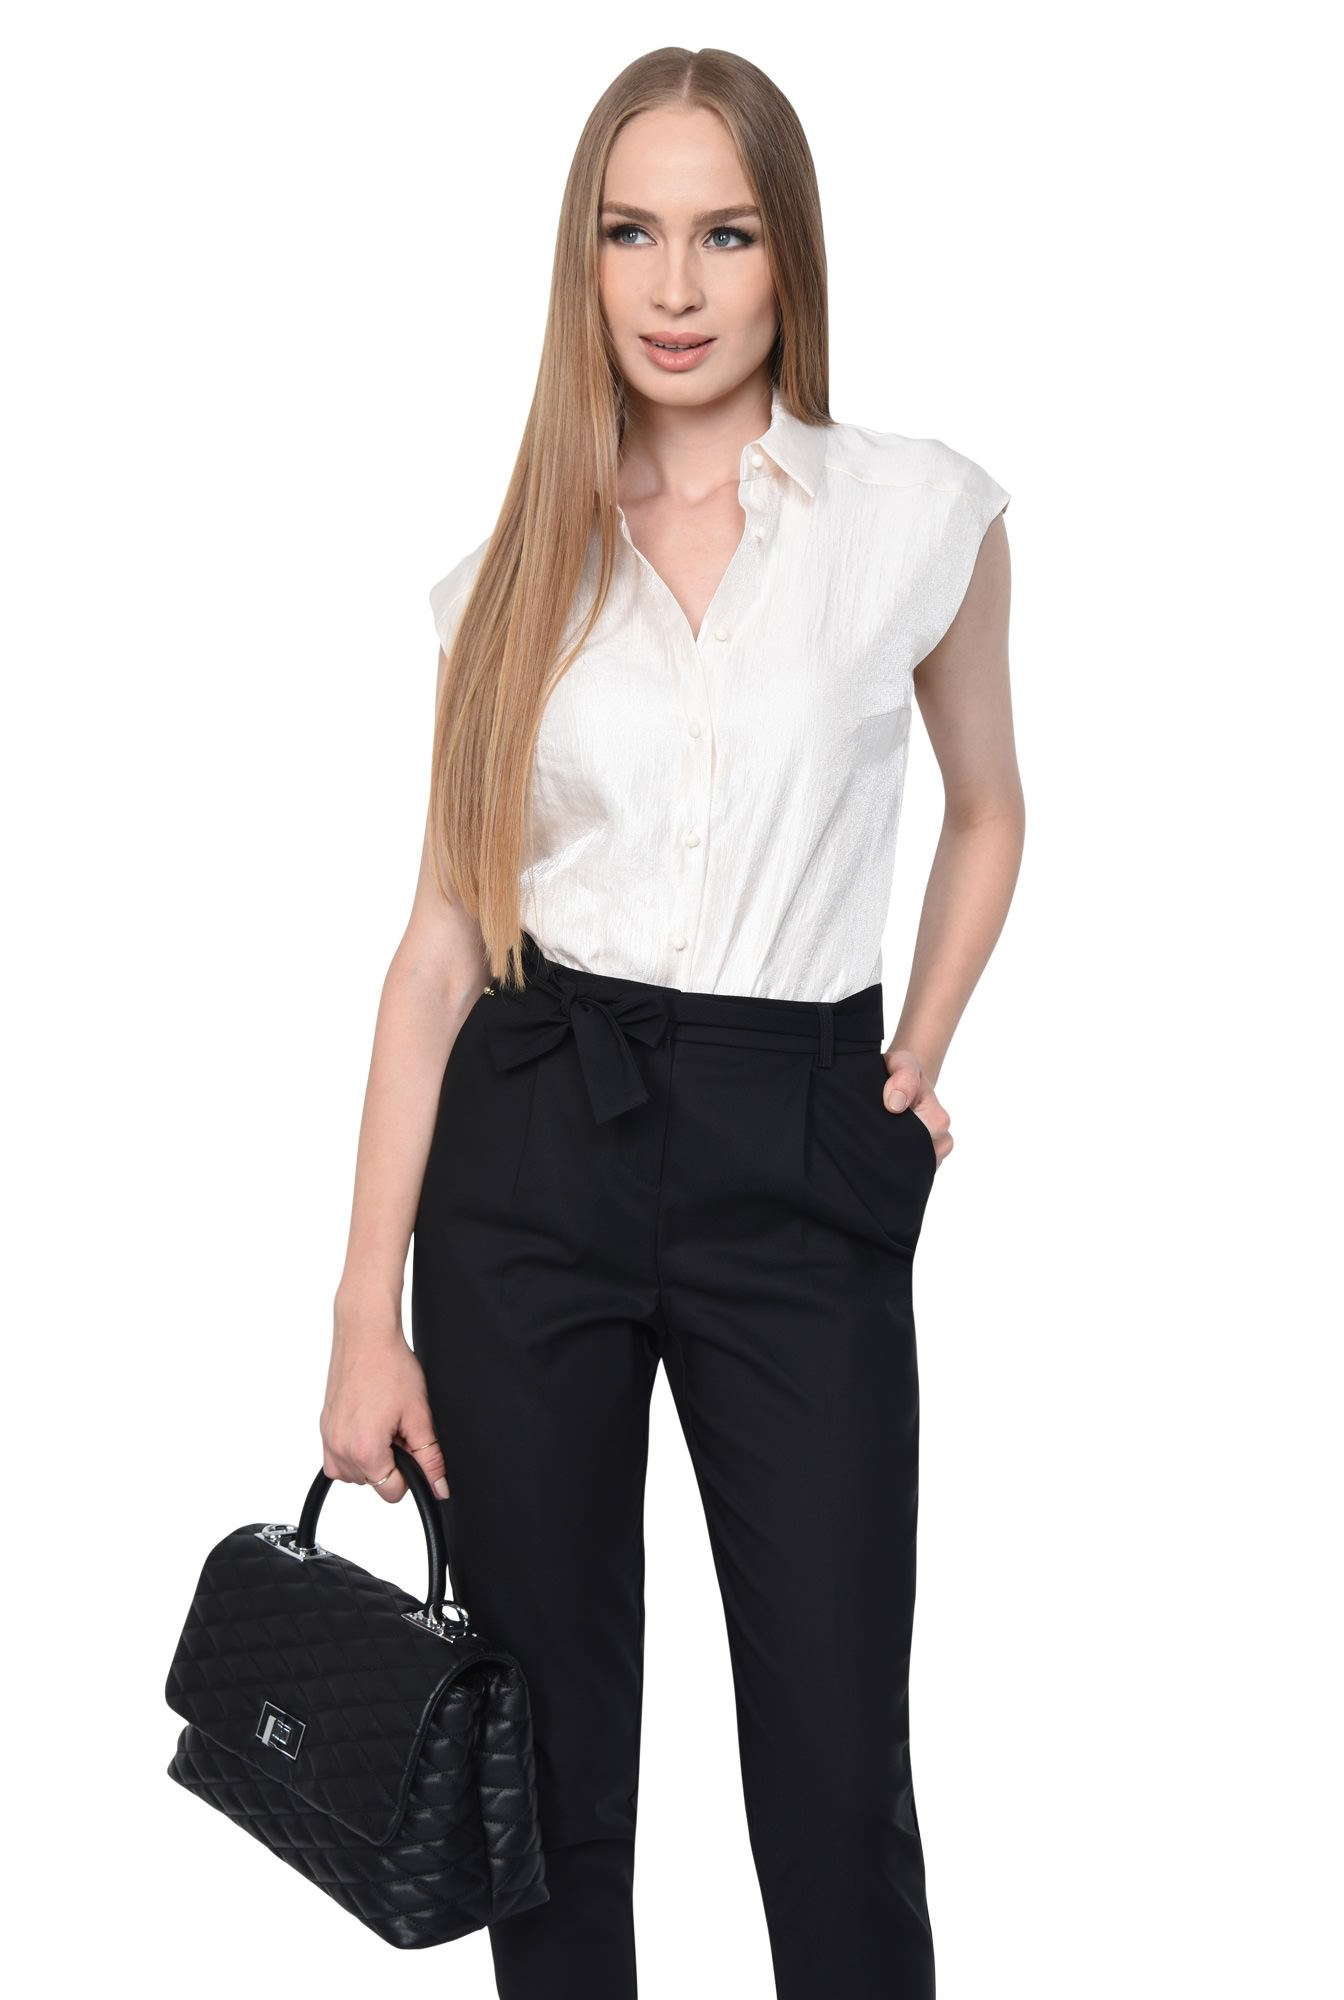 PANTALON OFFICE CONIC PT 157-NEGRU